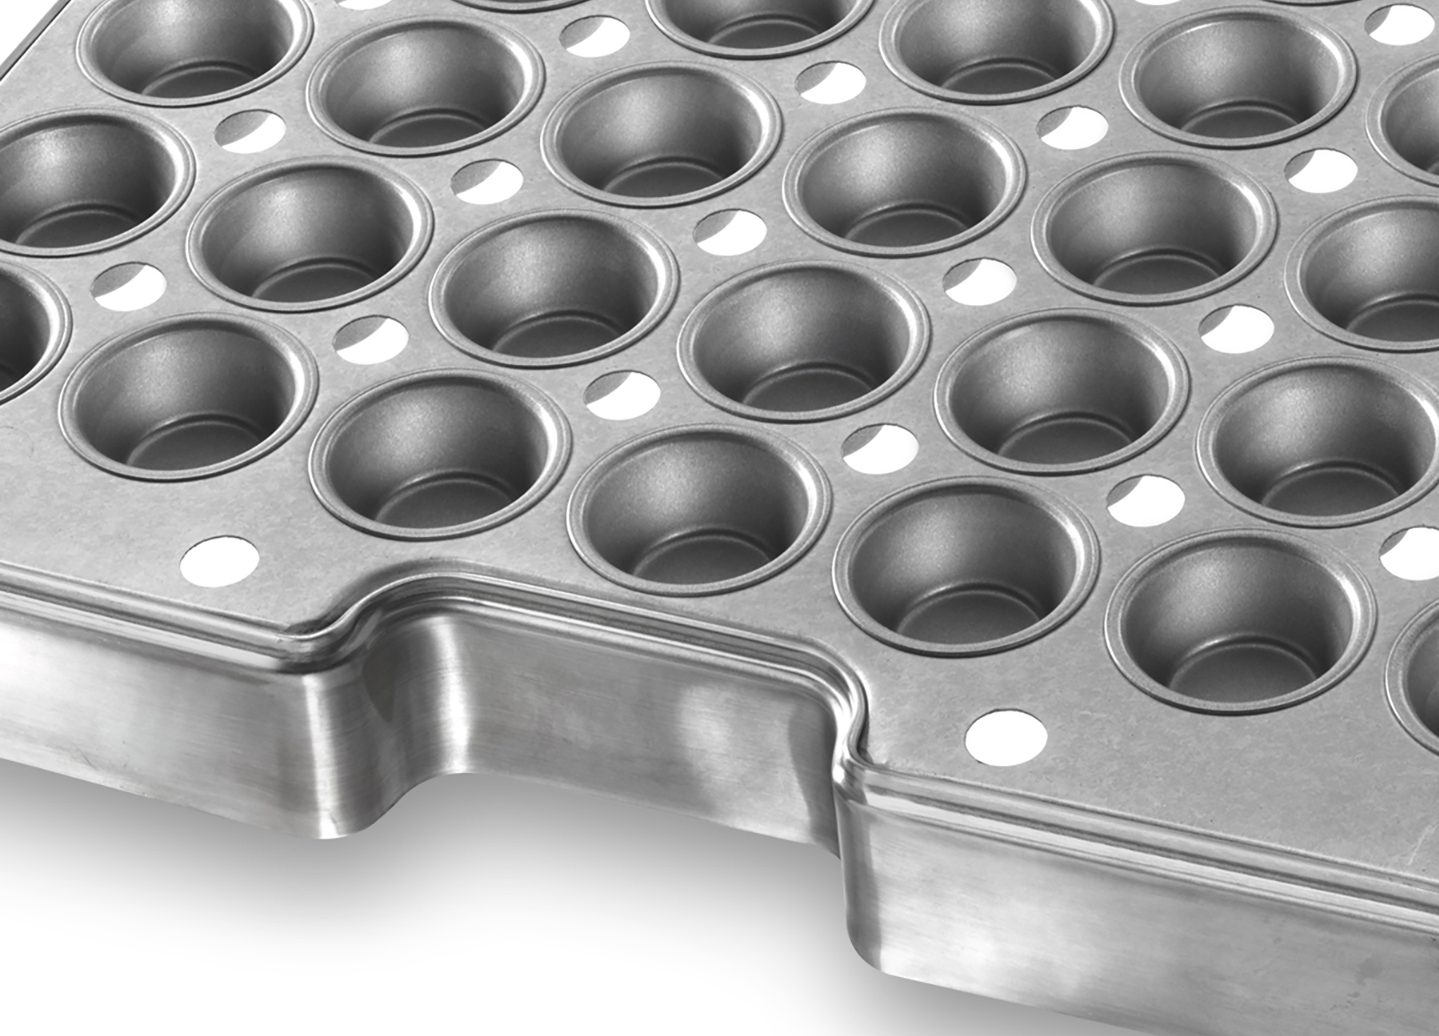 Auto-Bake Muffin ePAN with Drain Holes – AMERICOAT® Coating